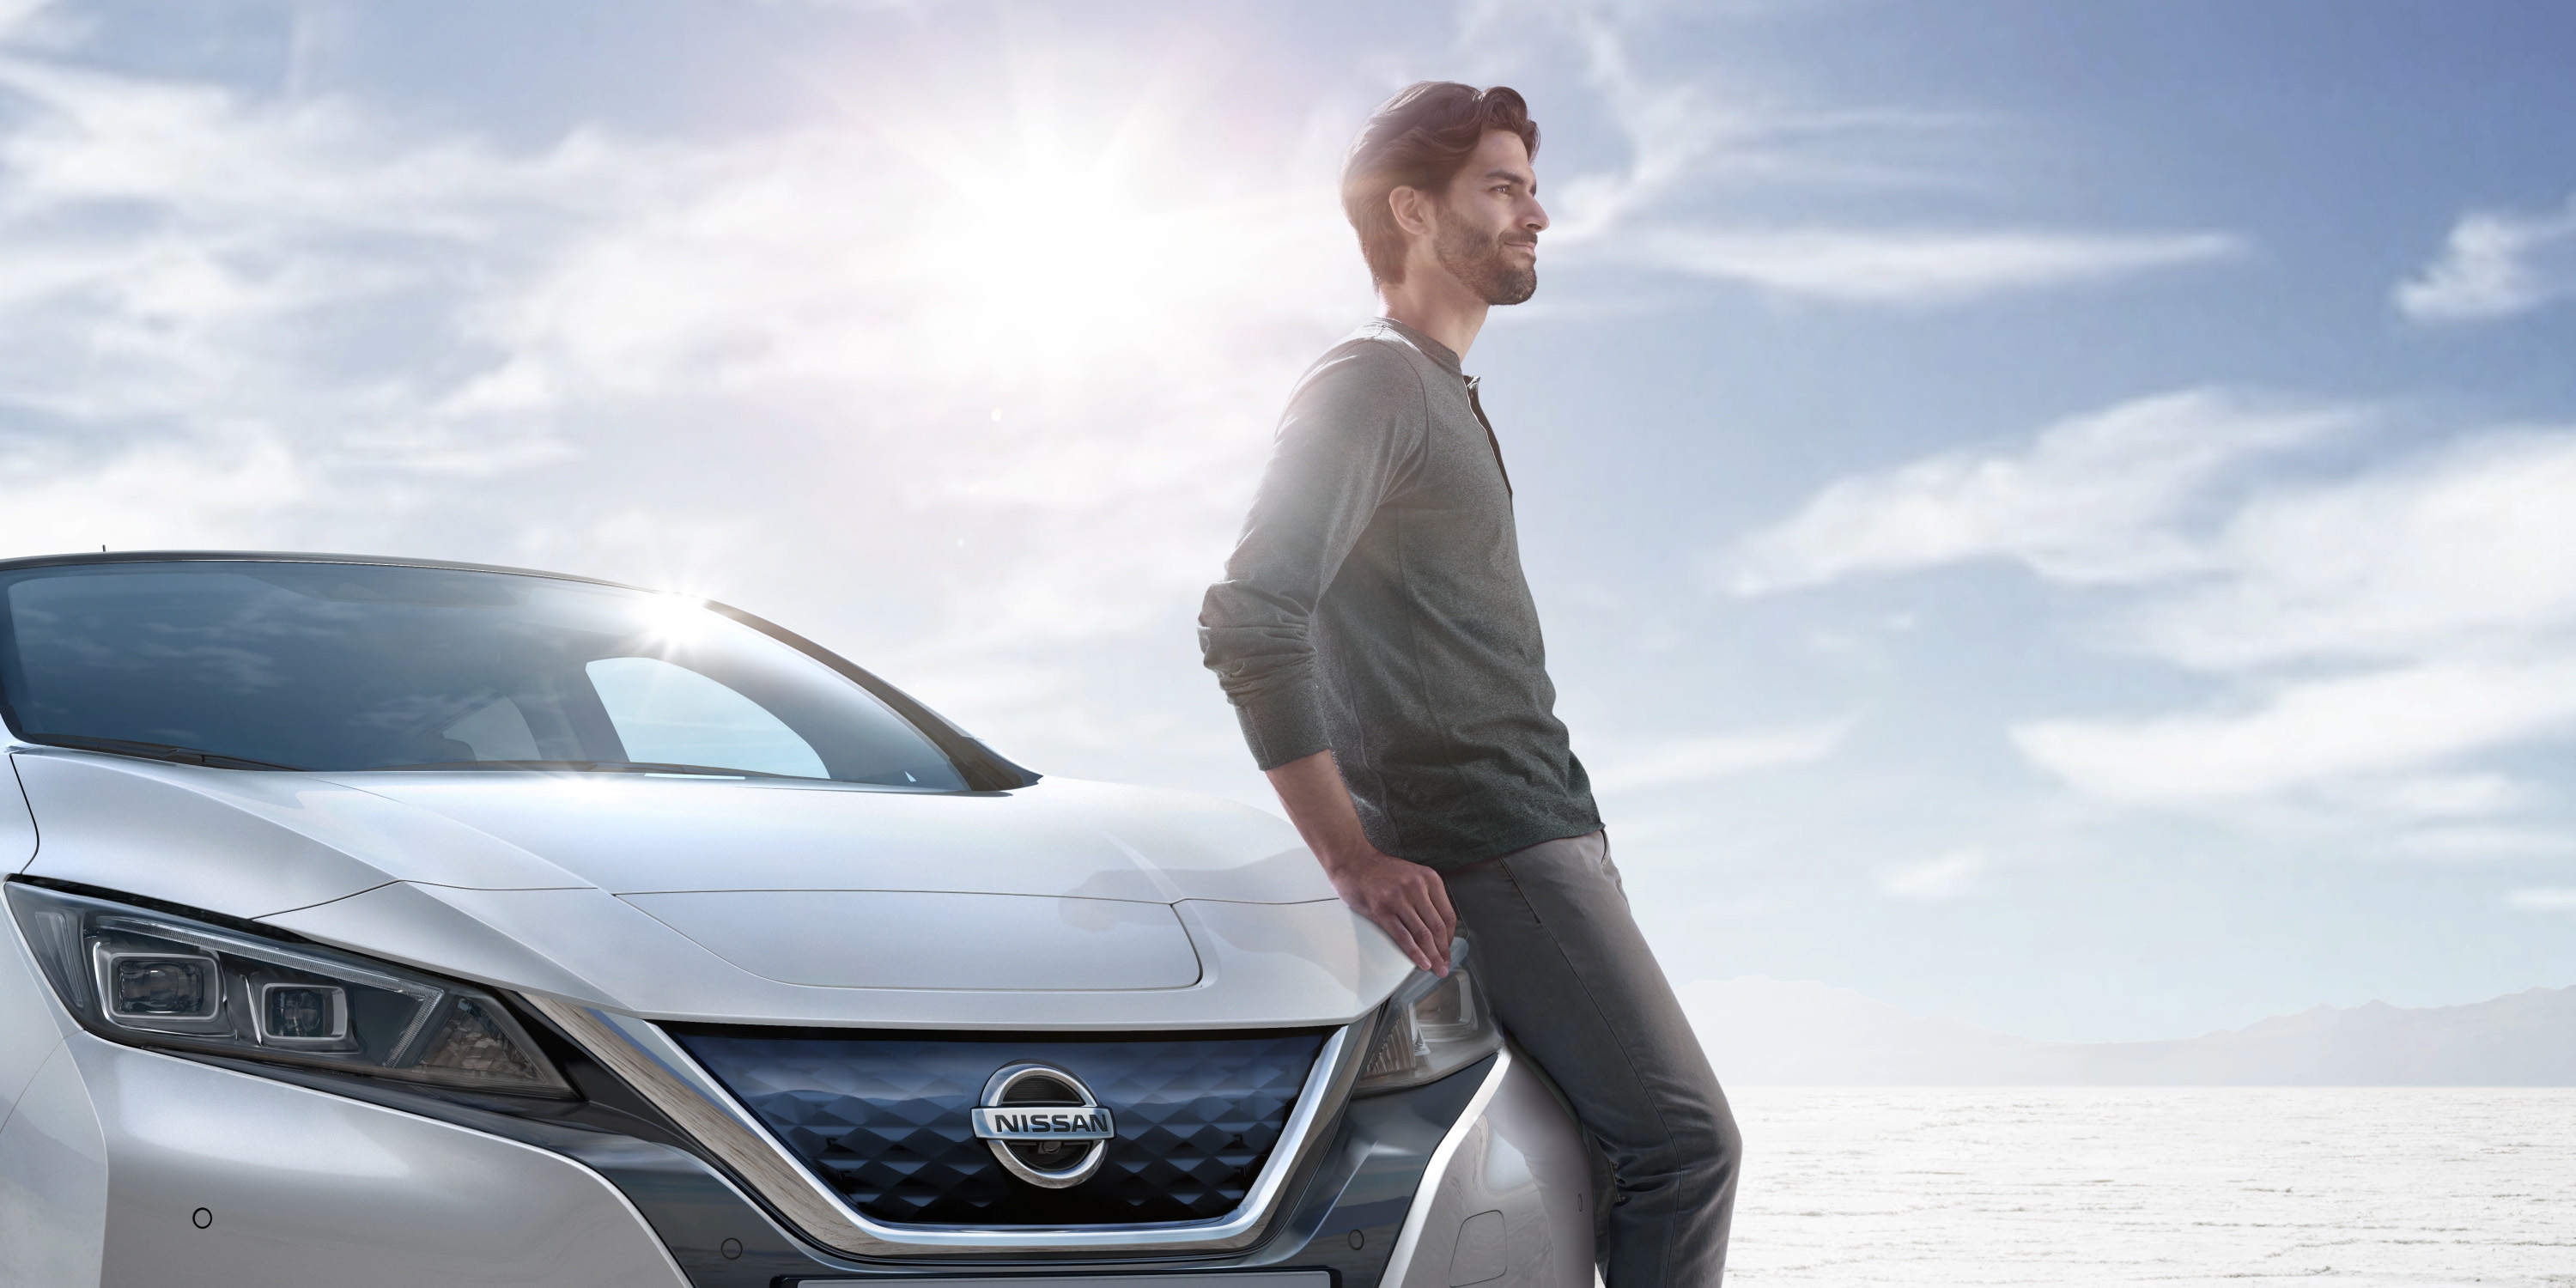 Nissan LEAF in the desert with a man leaning up against the front of the vehicle